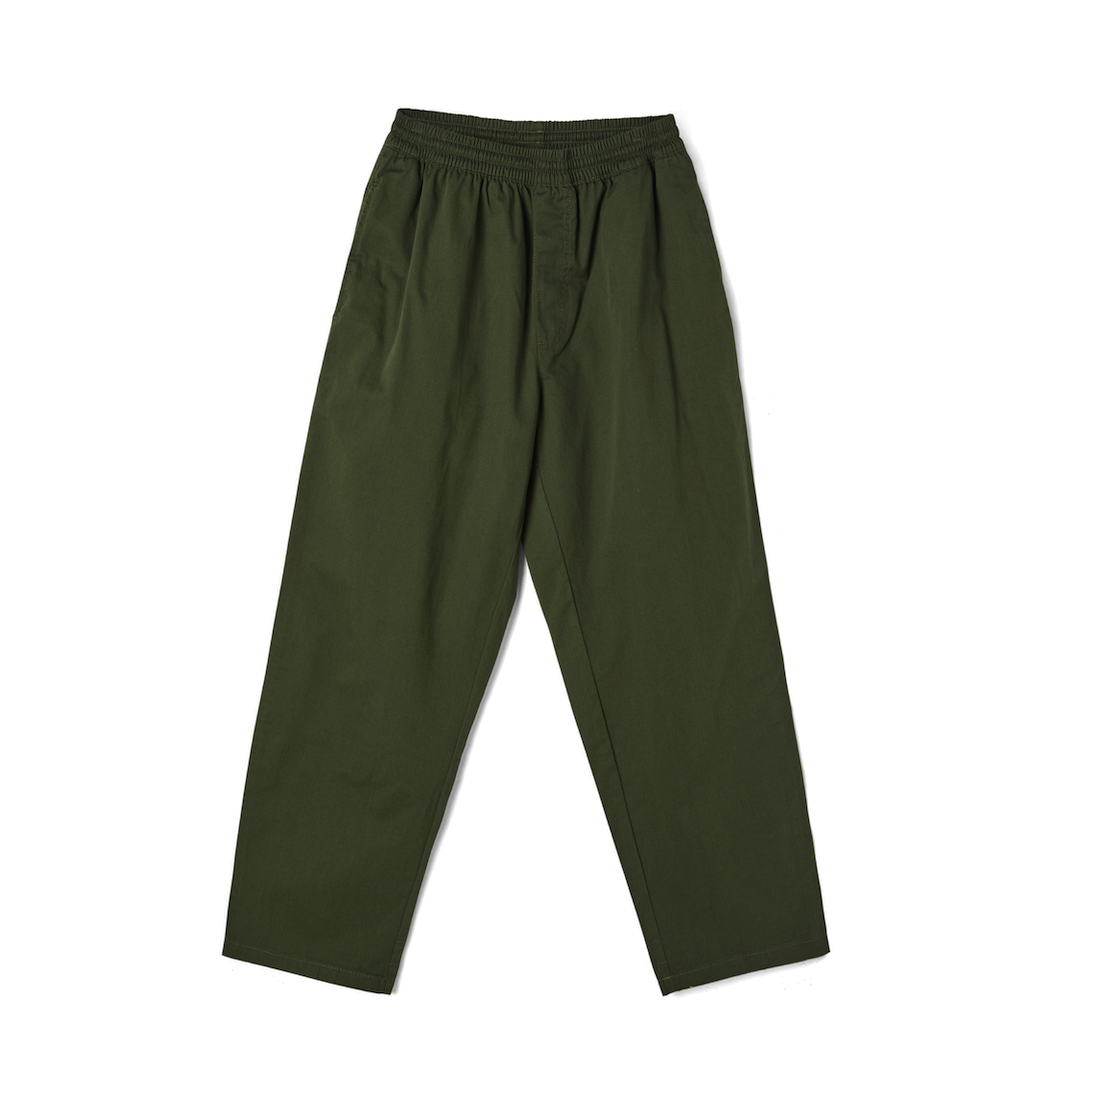 【POLAR SKATE CO.】Surf Pants - Dark Olive